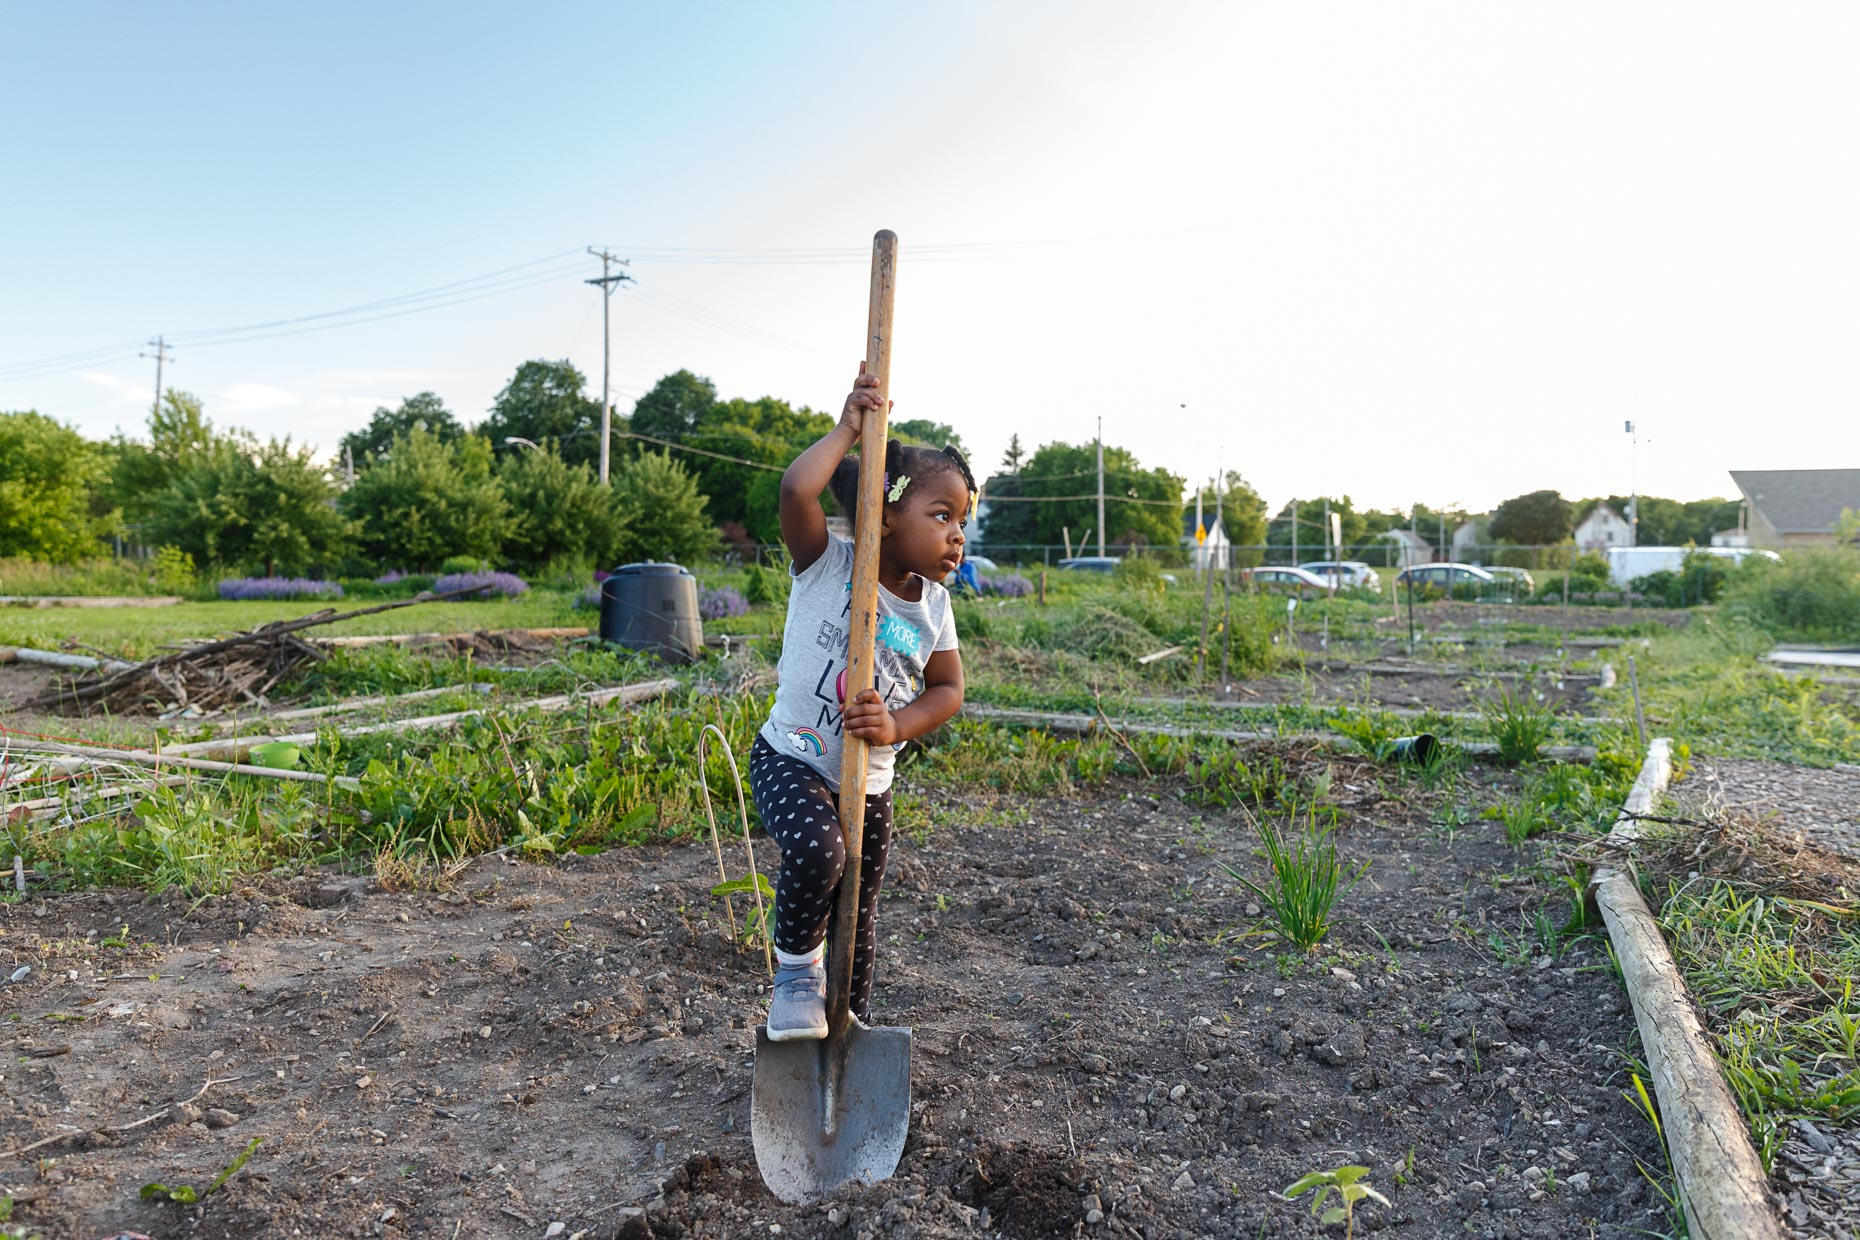 Zoe Scholle-Malone, age 3, gets some work done in the family garden plot.